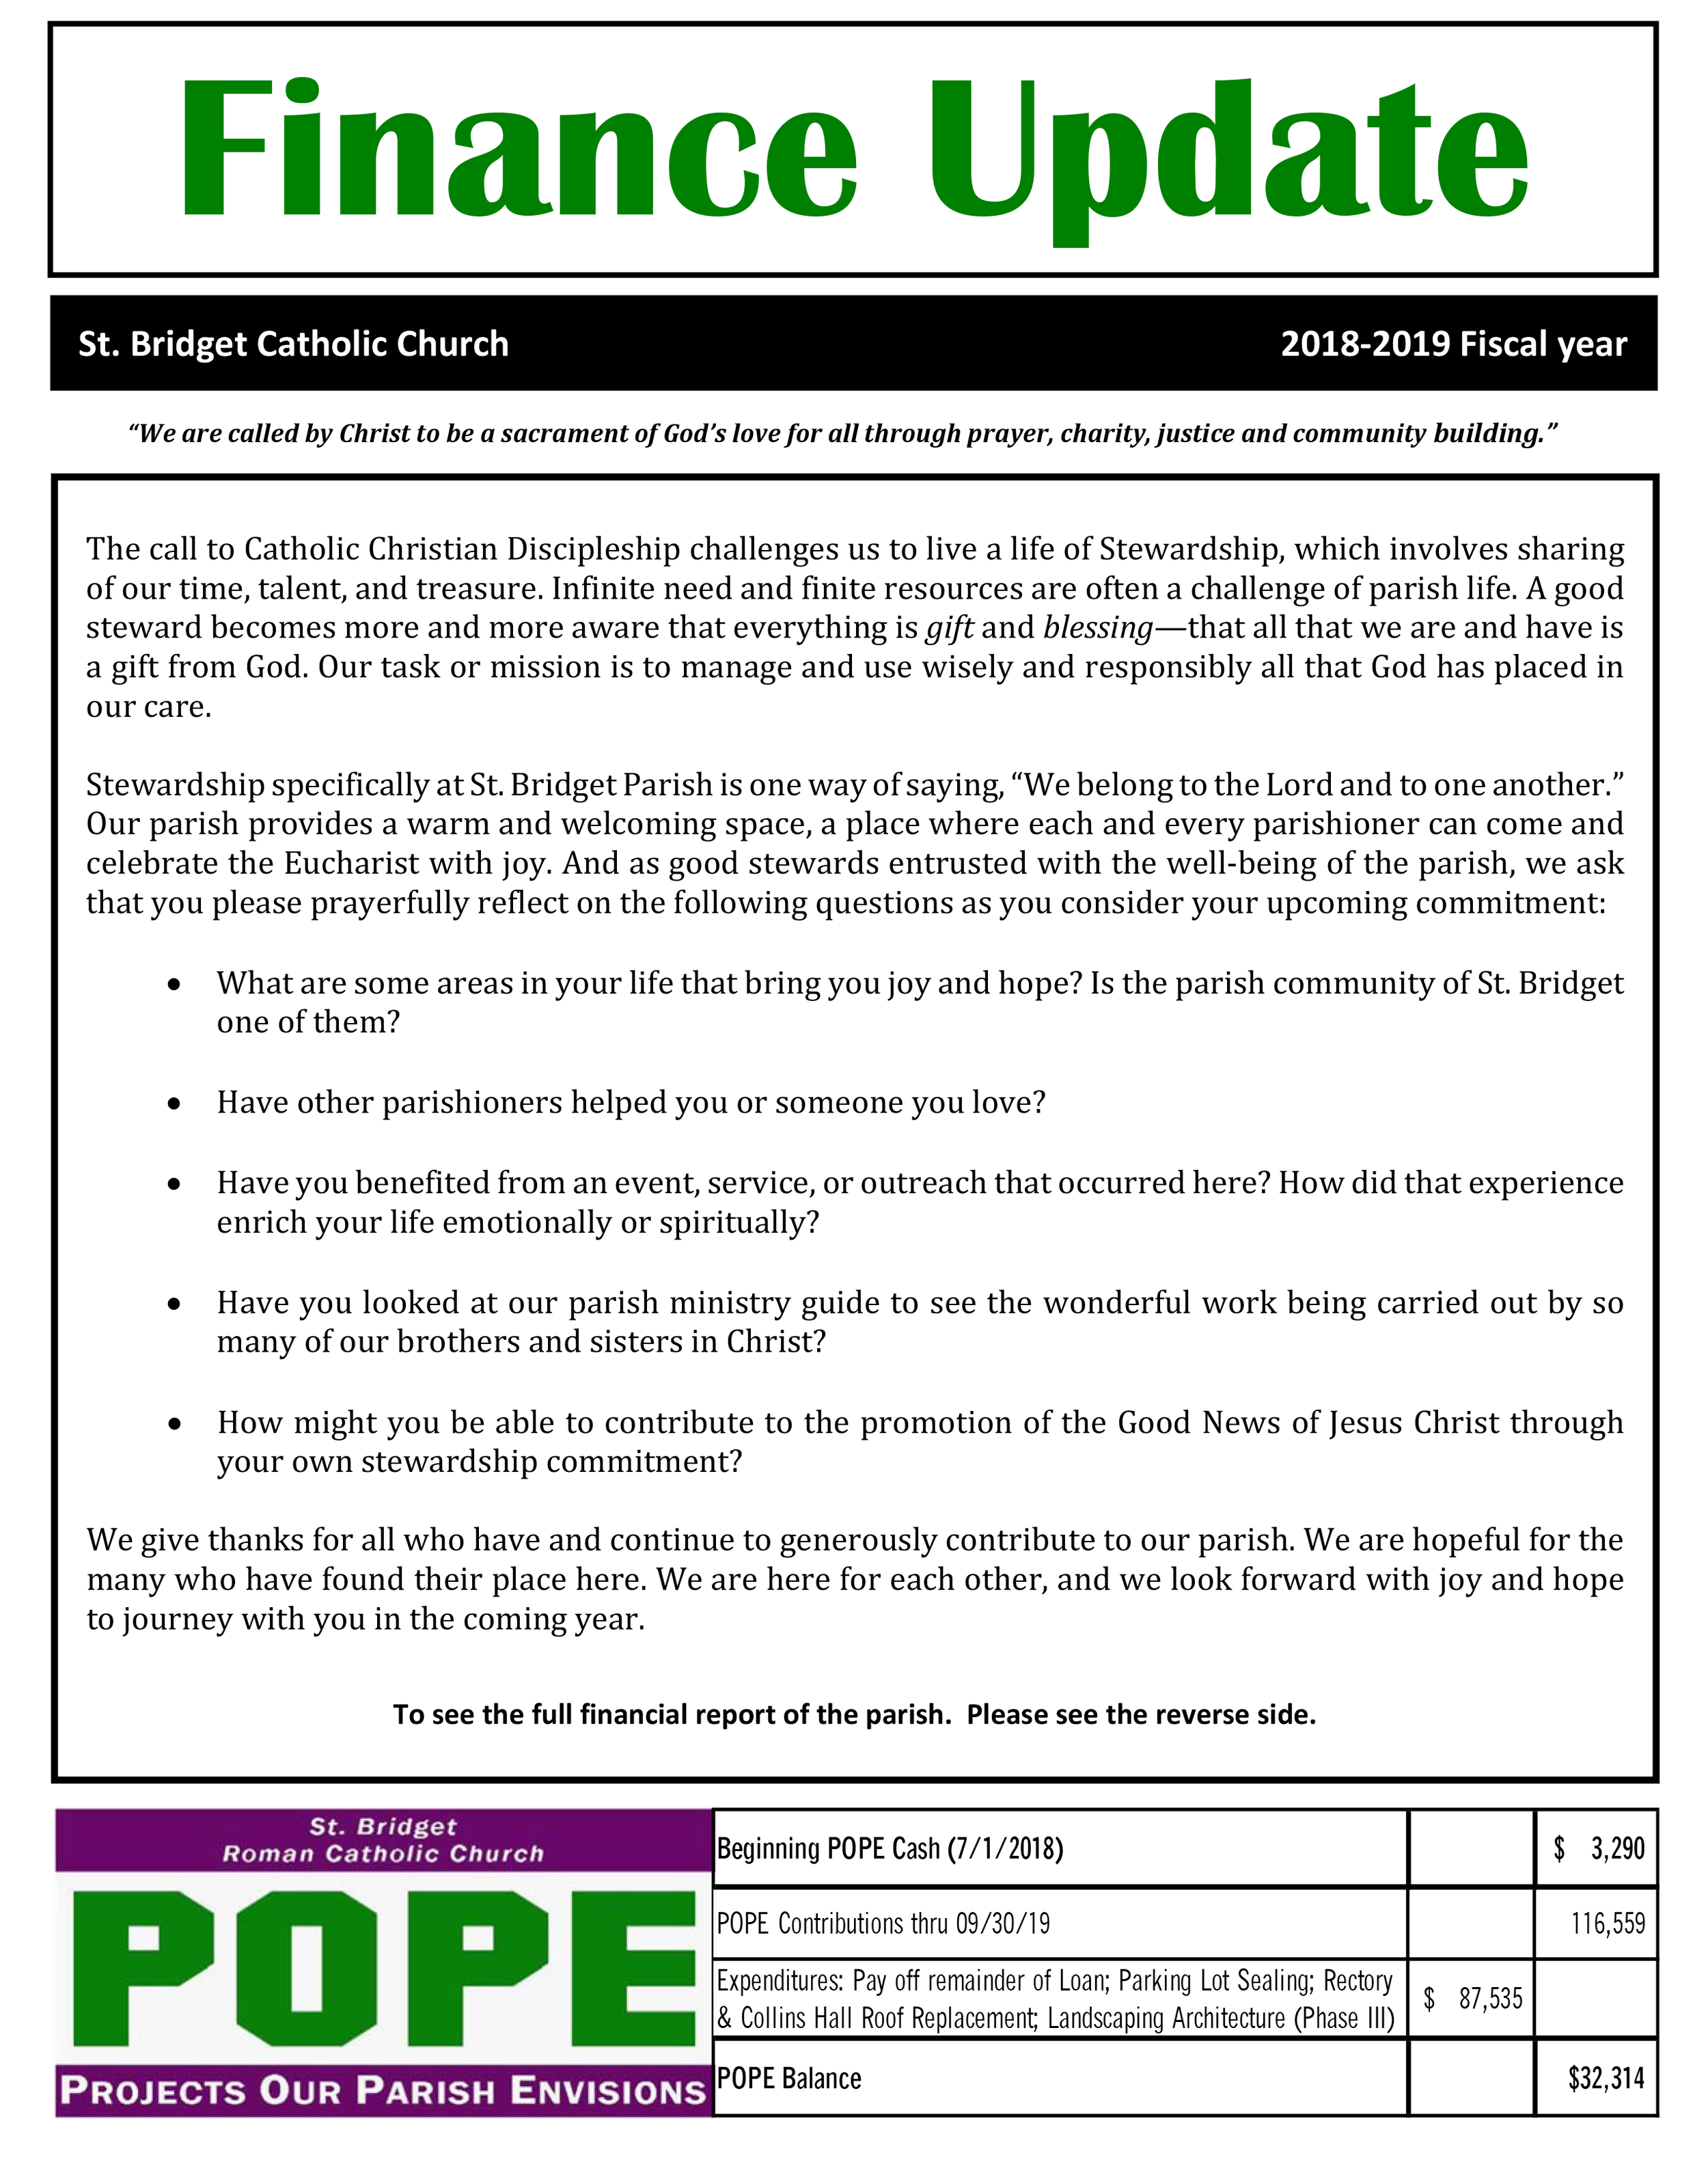 Finance-Update-2019-p1.png